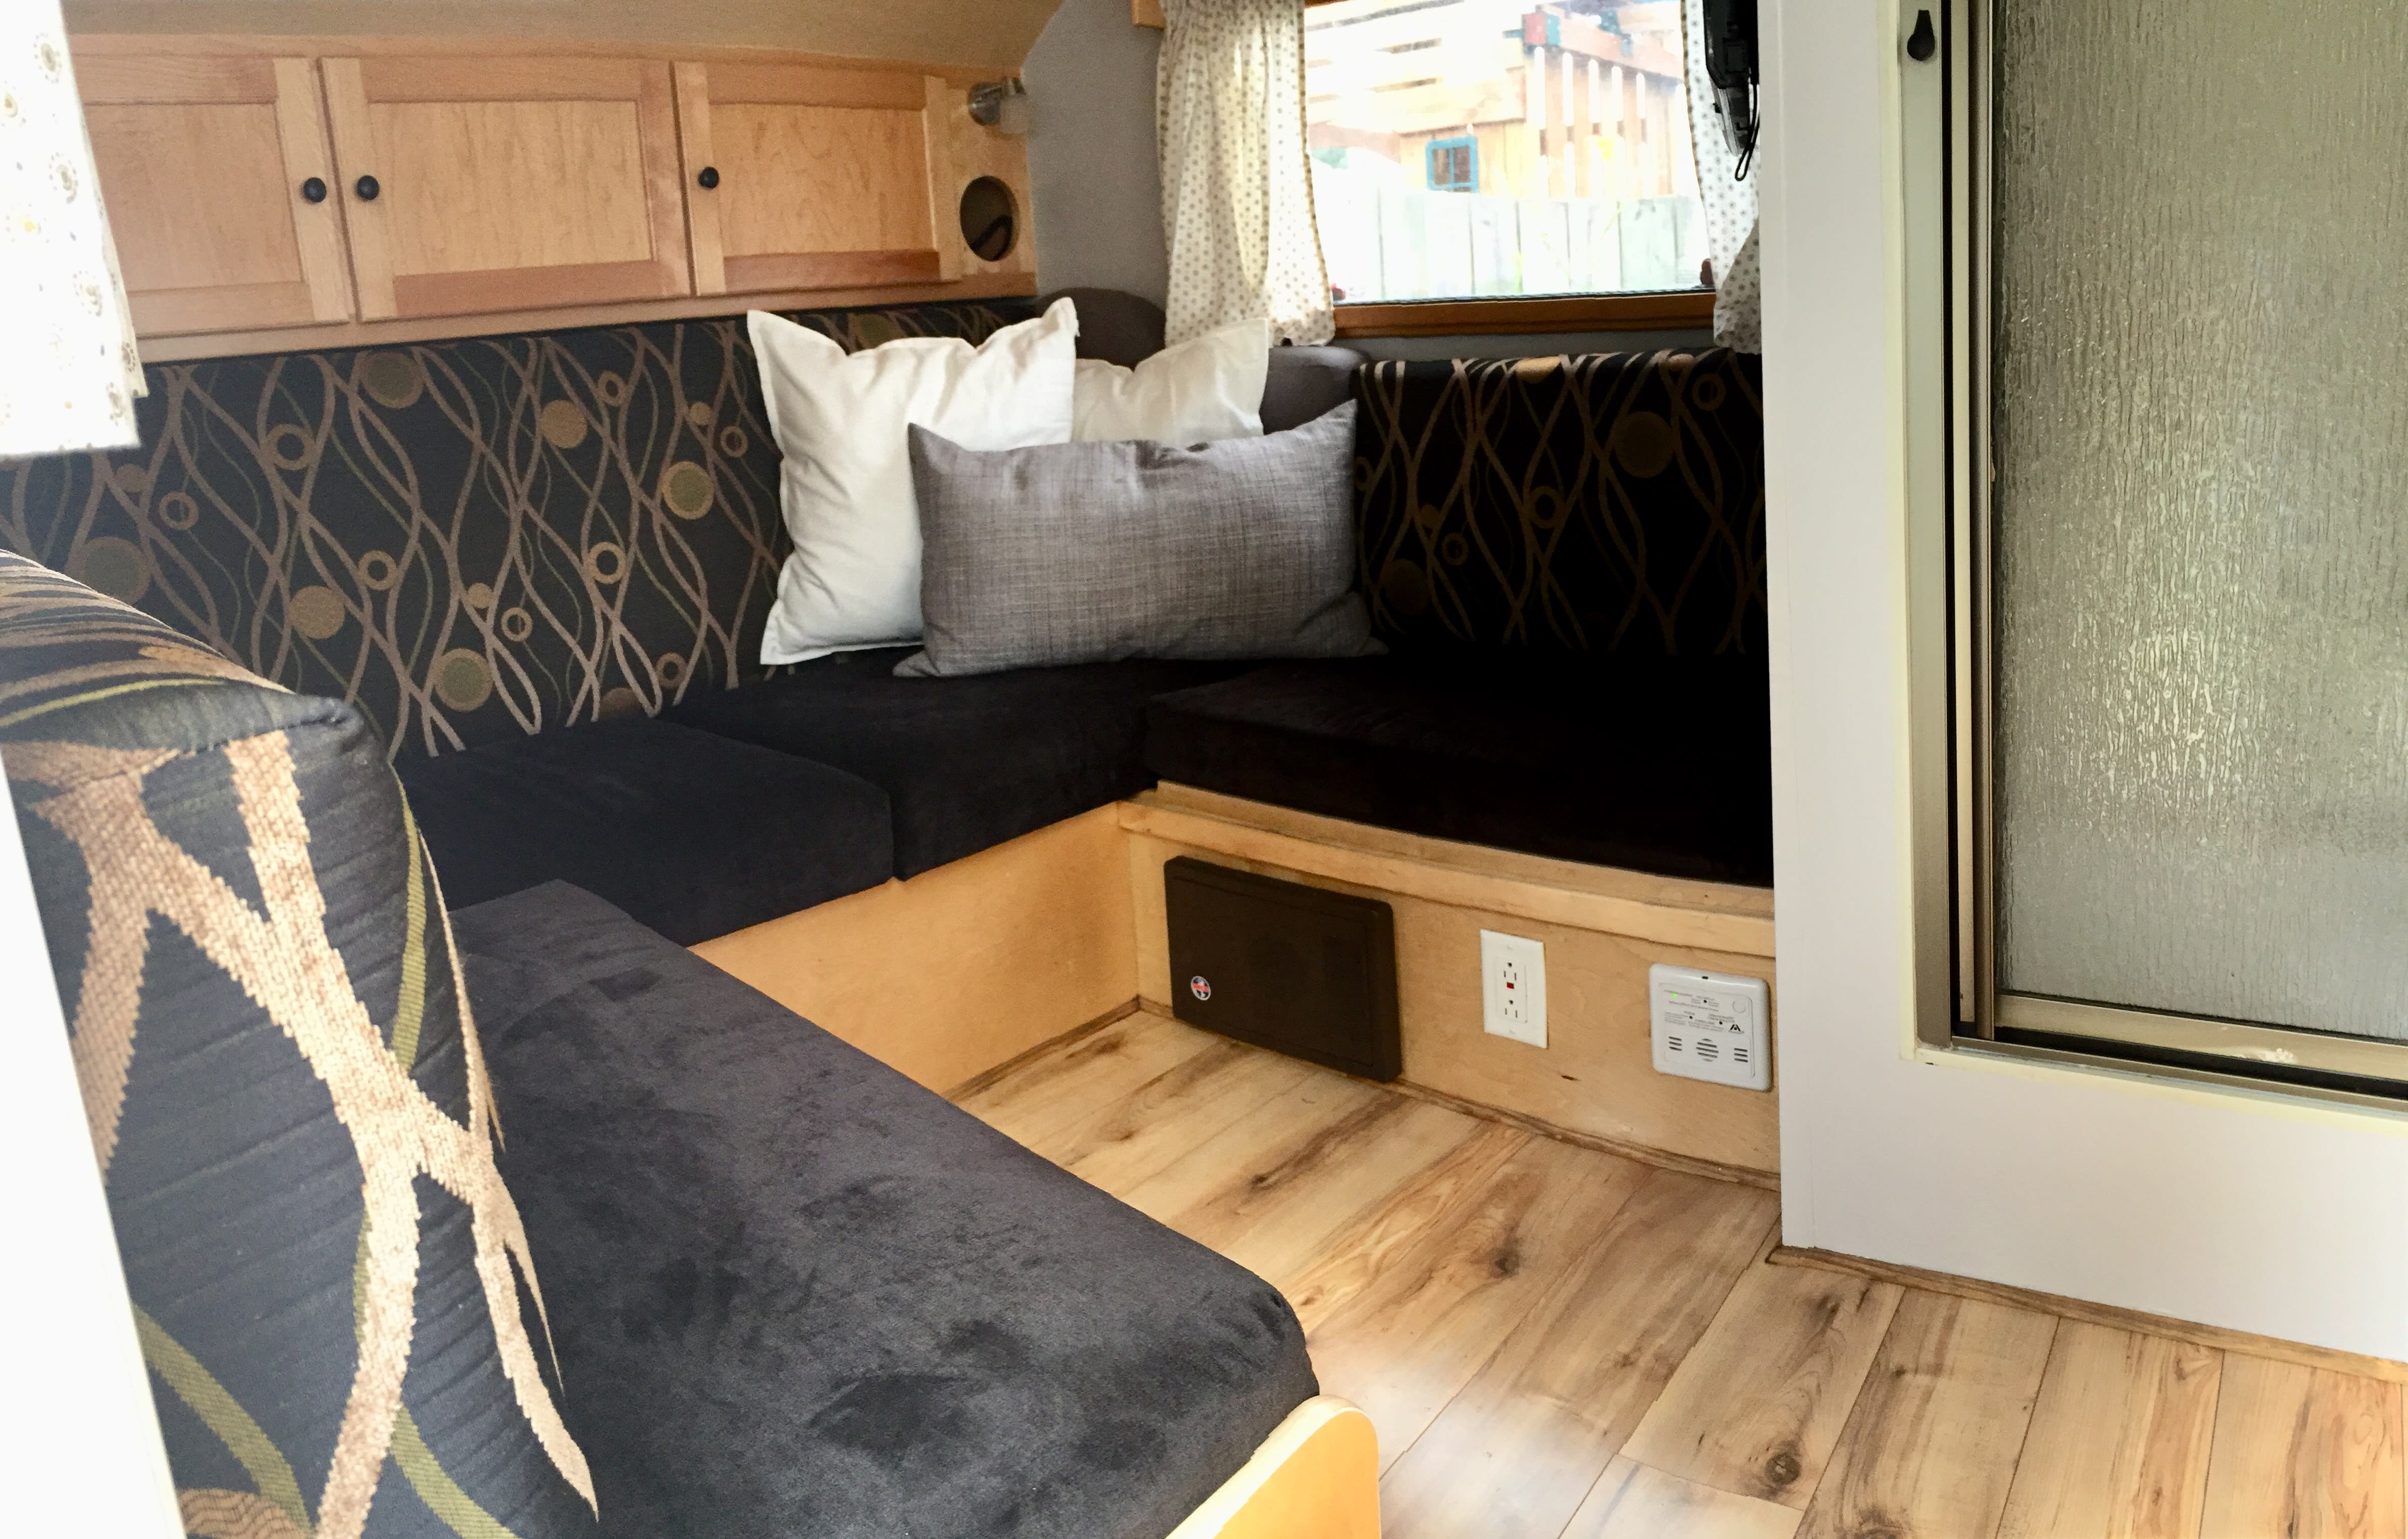 Seating Area (Converts to Queen Size Bed for sleeping). Storage available under seats.. NuCamp 320 S Max 2016